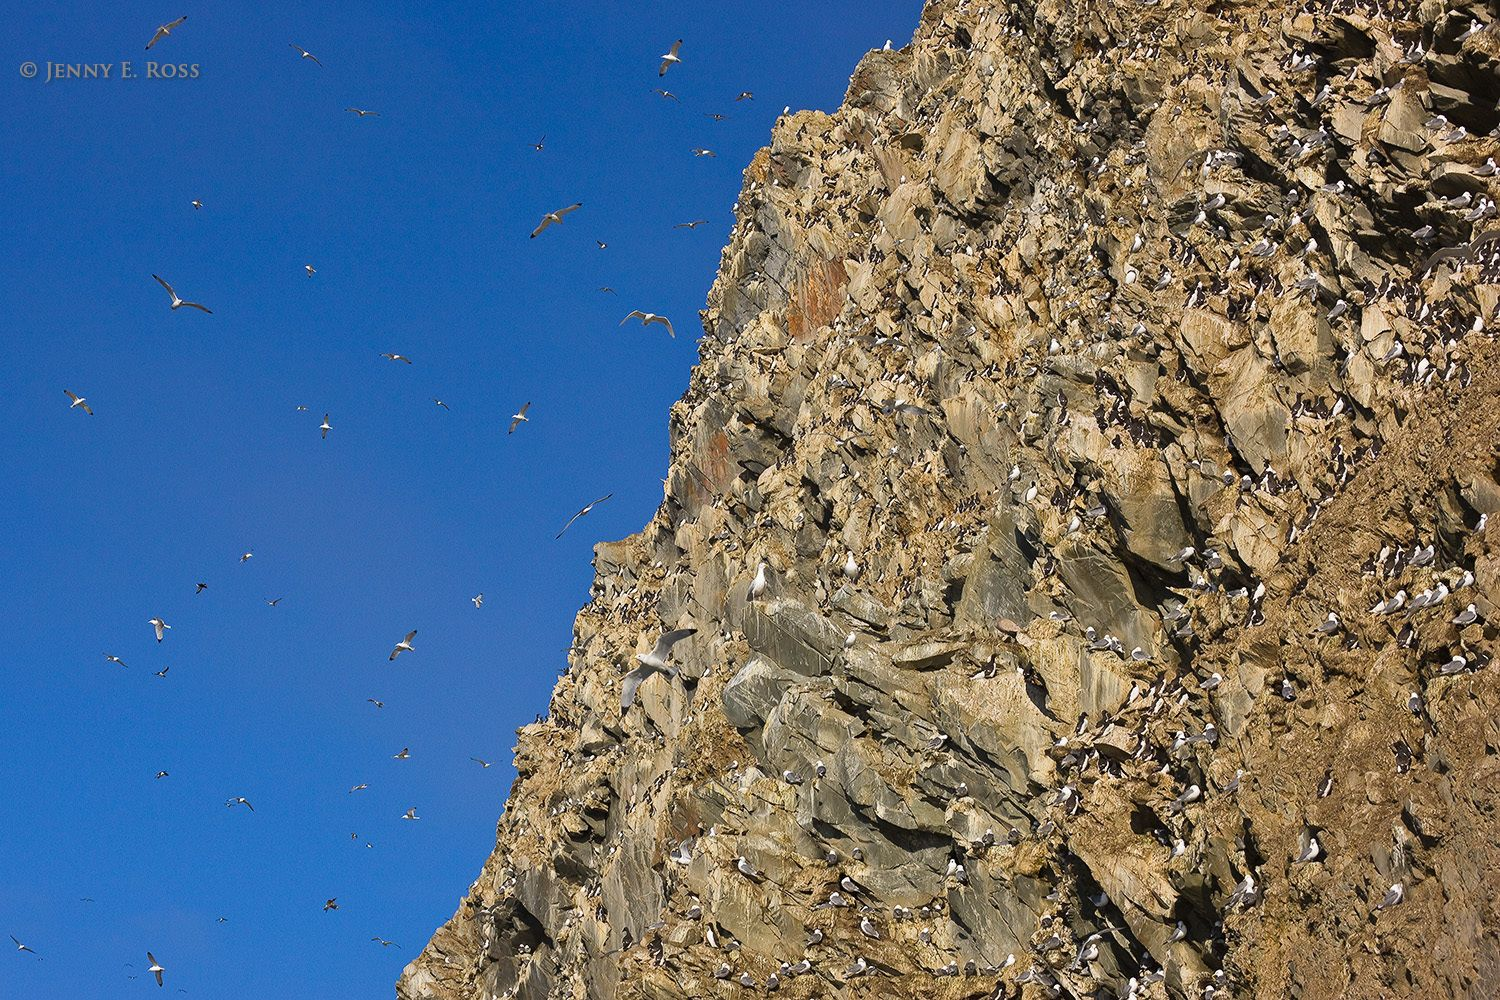 Seabirds flying and nesting at cliffside colony, Wrangel Island, Russia